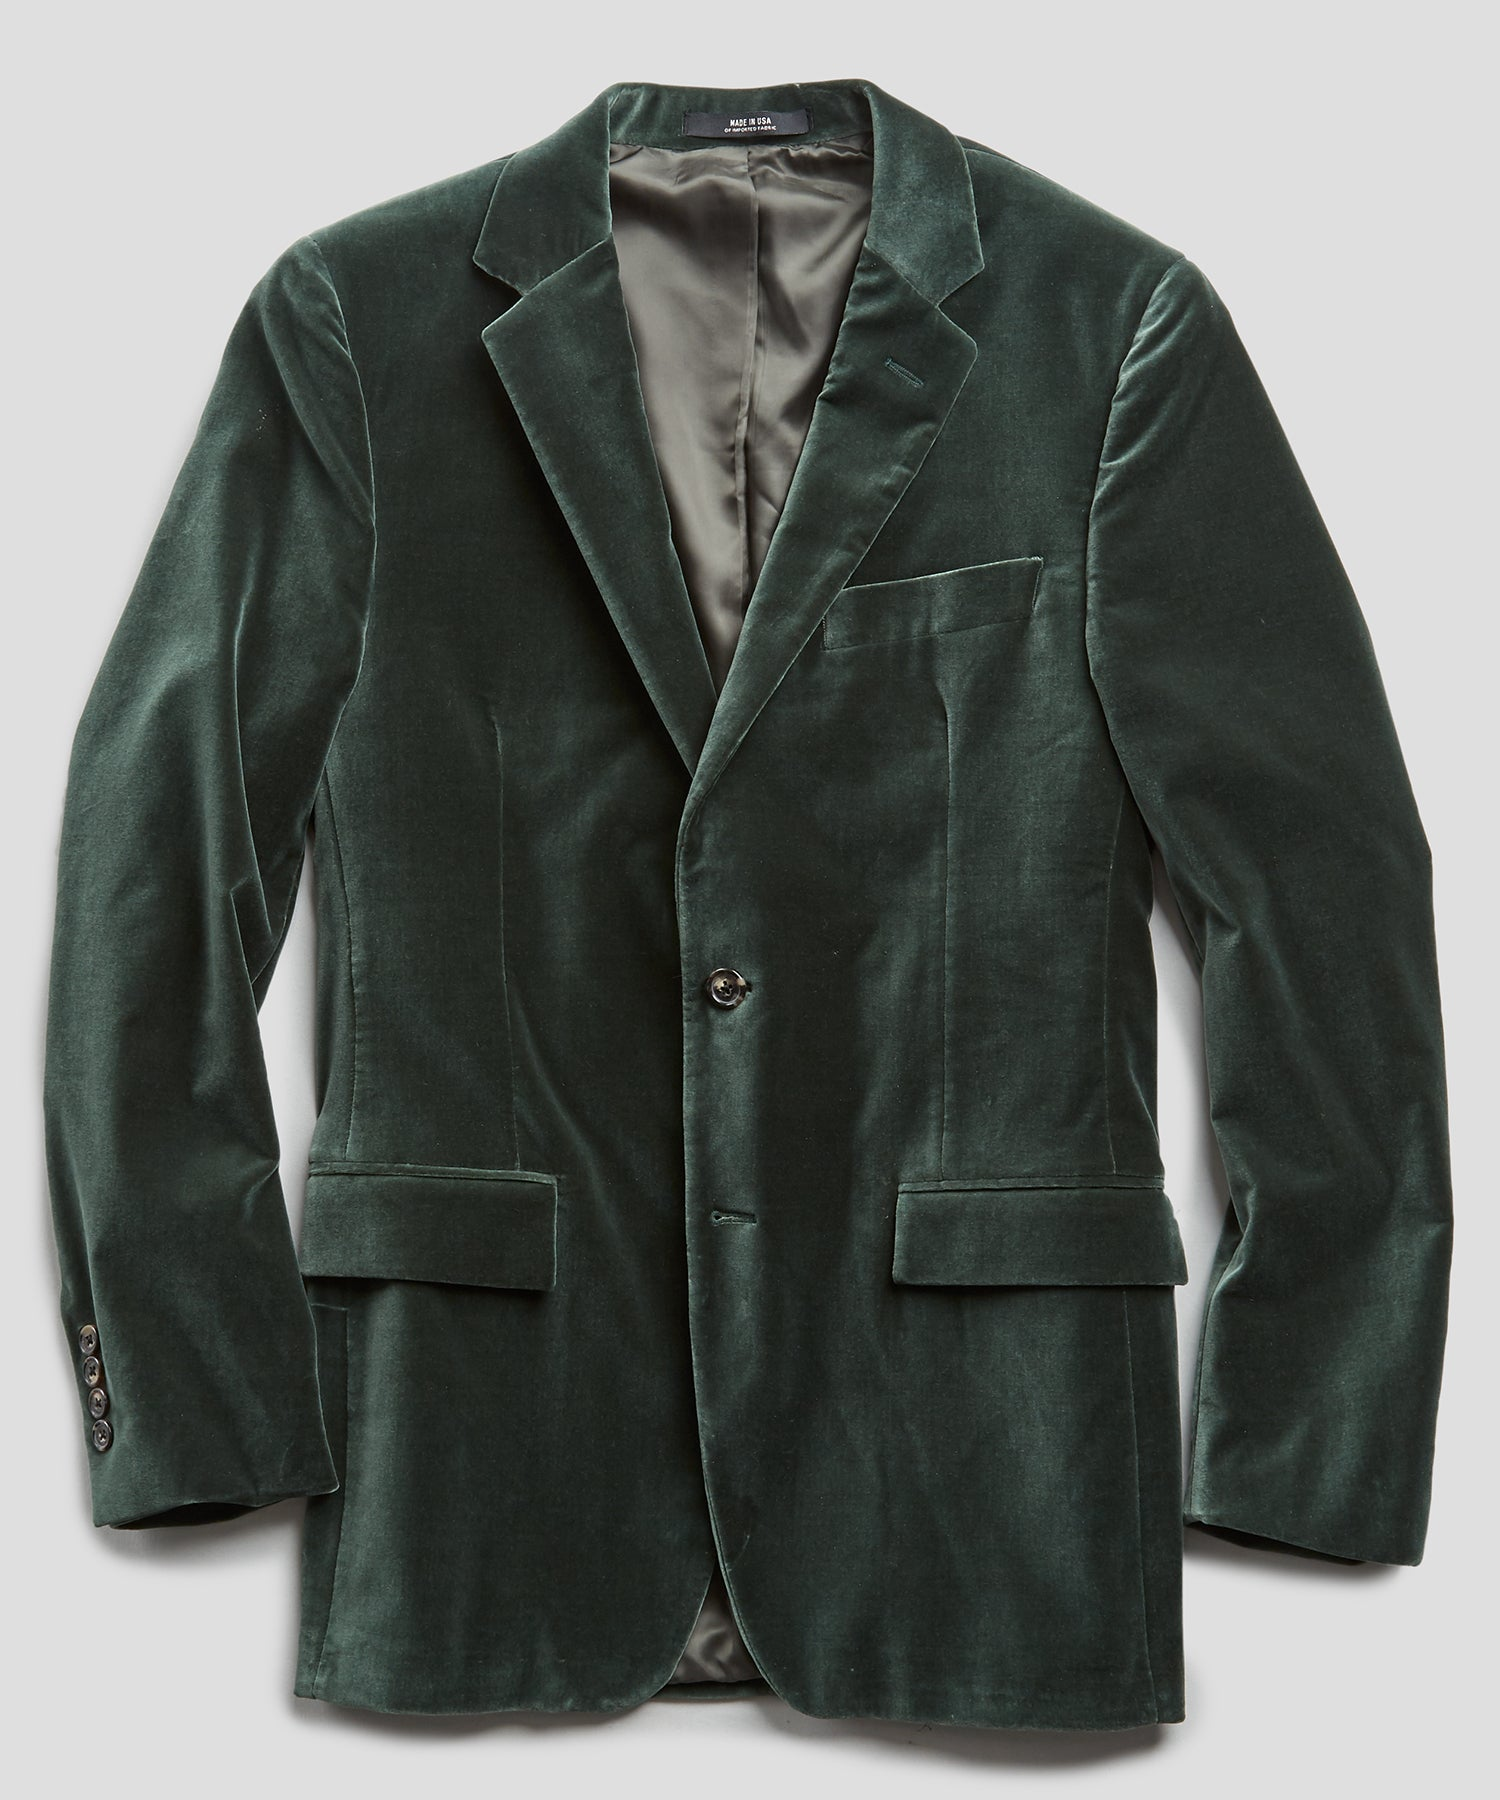 Sutton Velvet Sport Coat in Dark Green